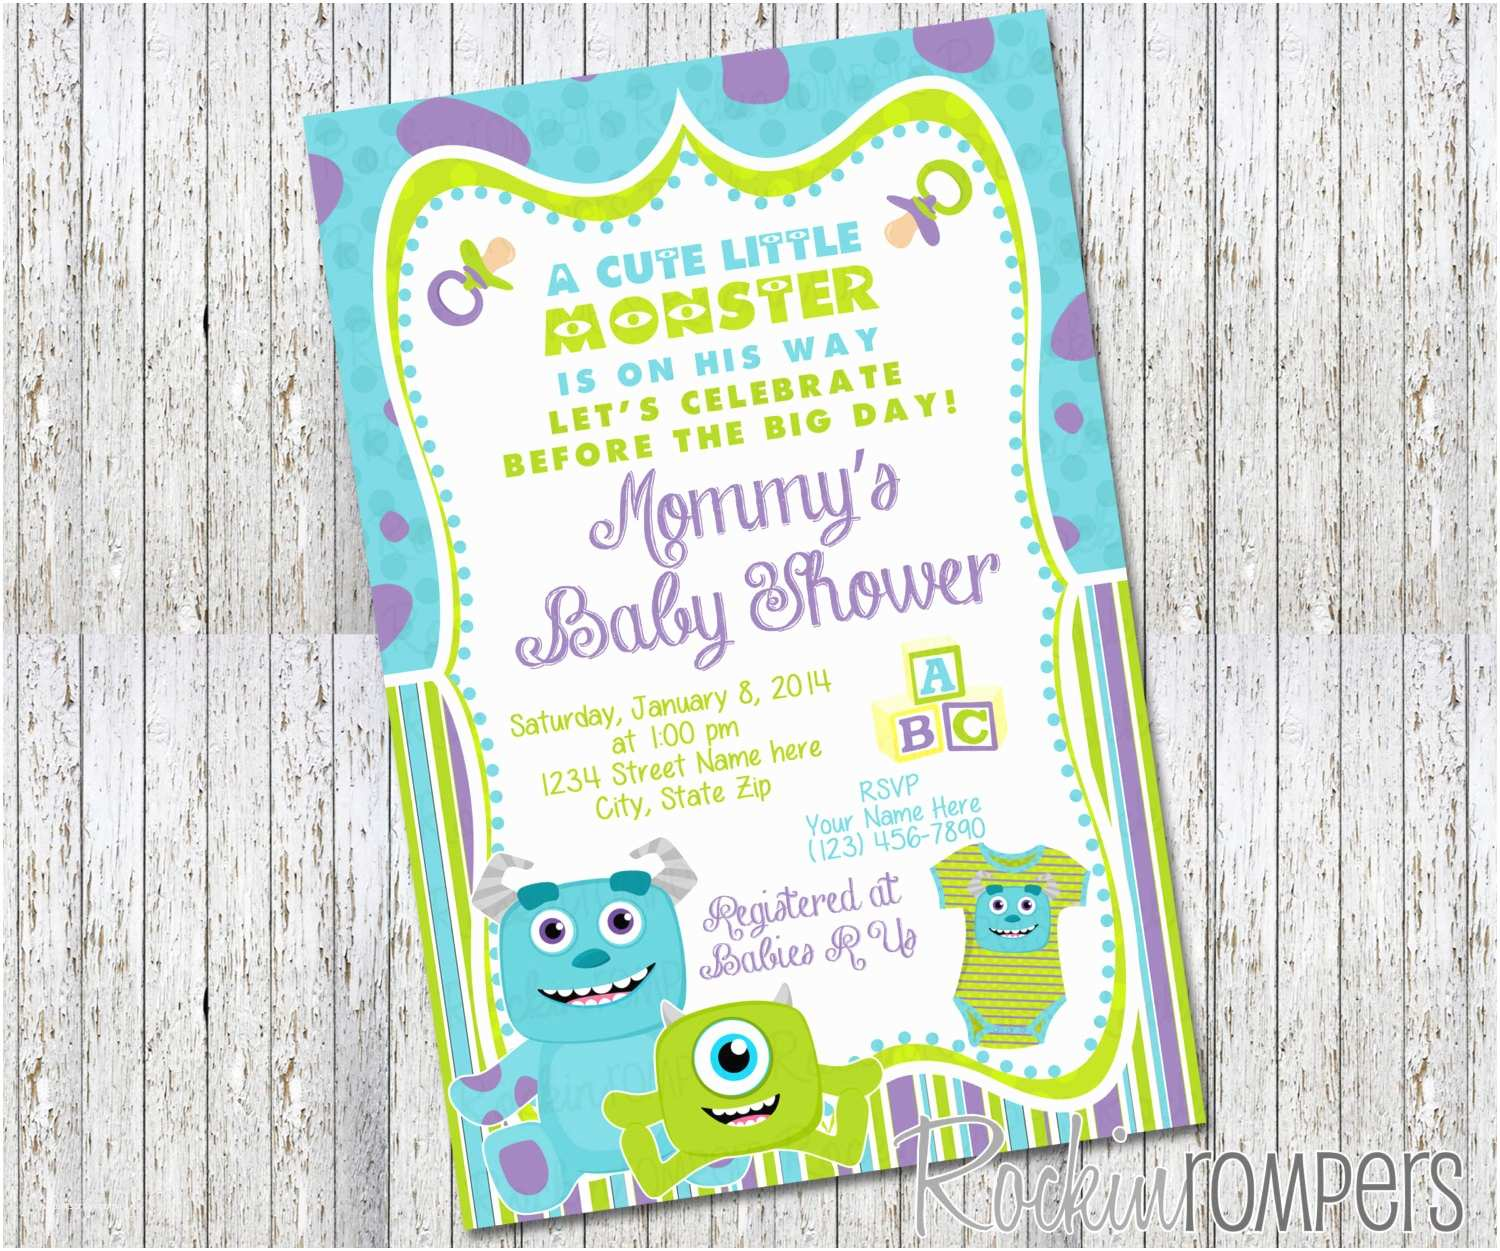 Monsters Inc Baby Shower Invitations Monsters Inc Inspired Baby Shower Invitation by Rockinrompers